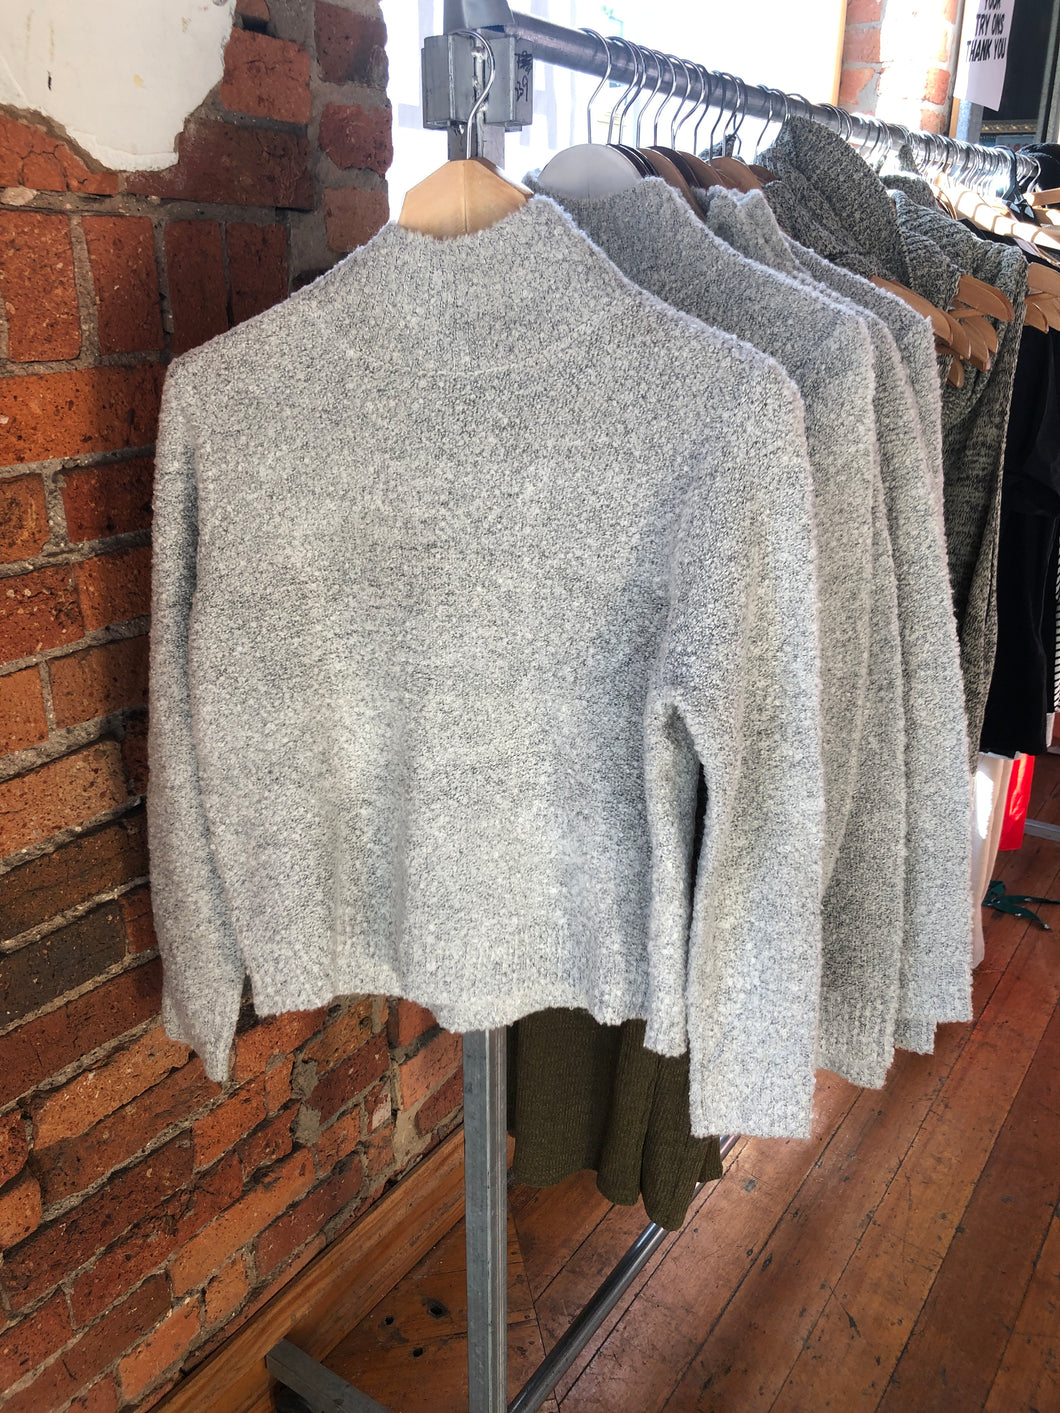 LOOPED OUT SKIVVY JUMPER